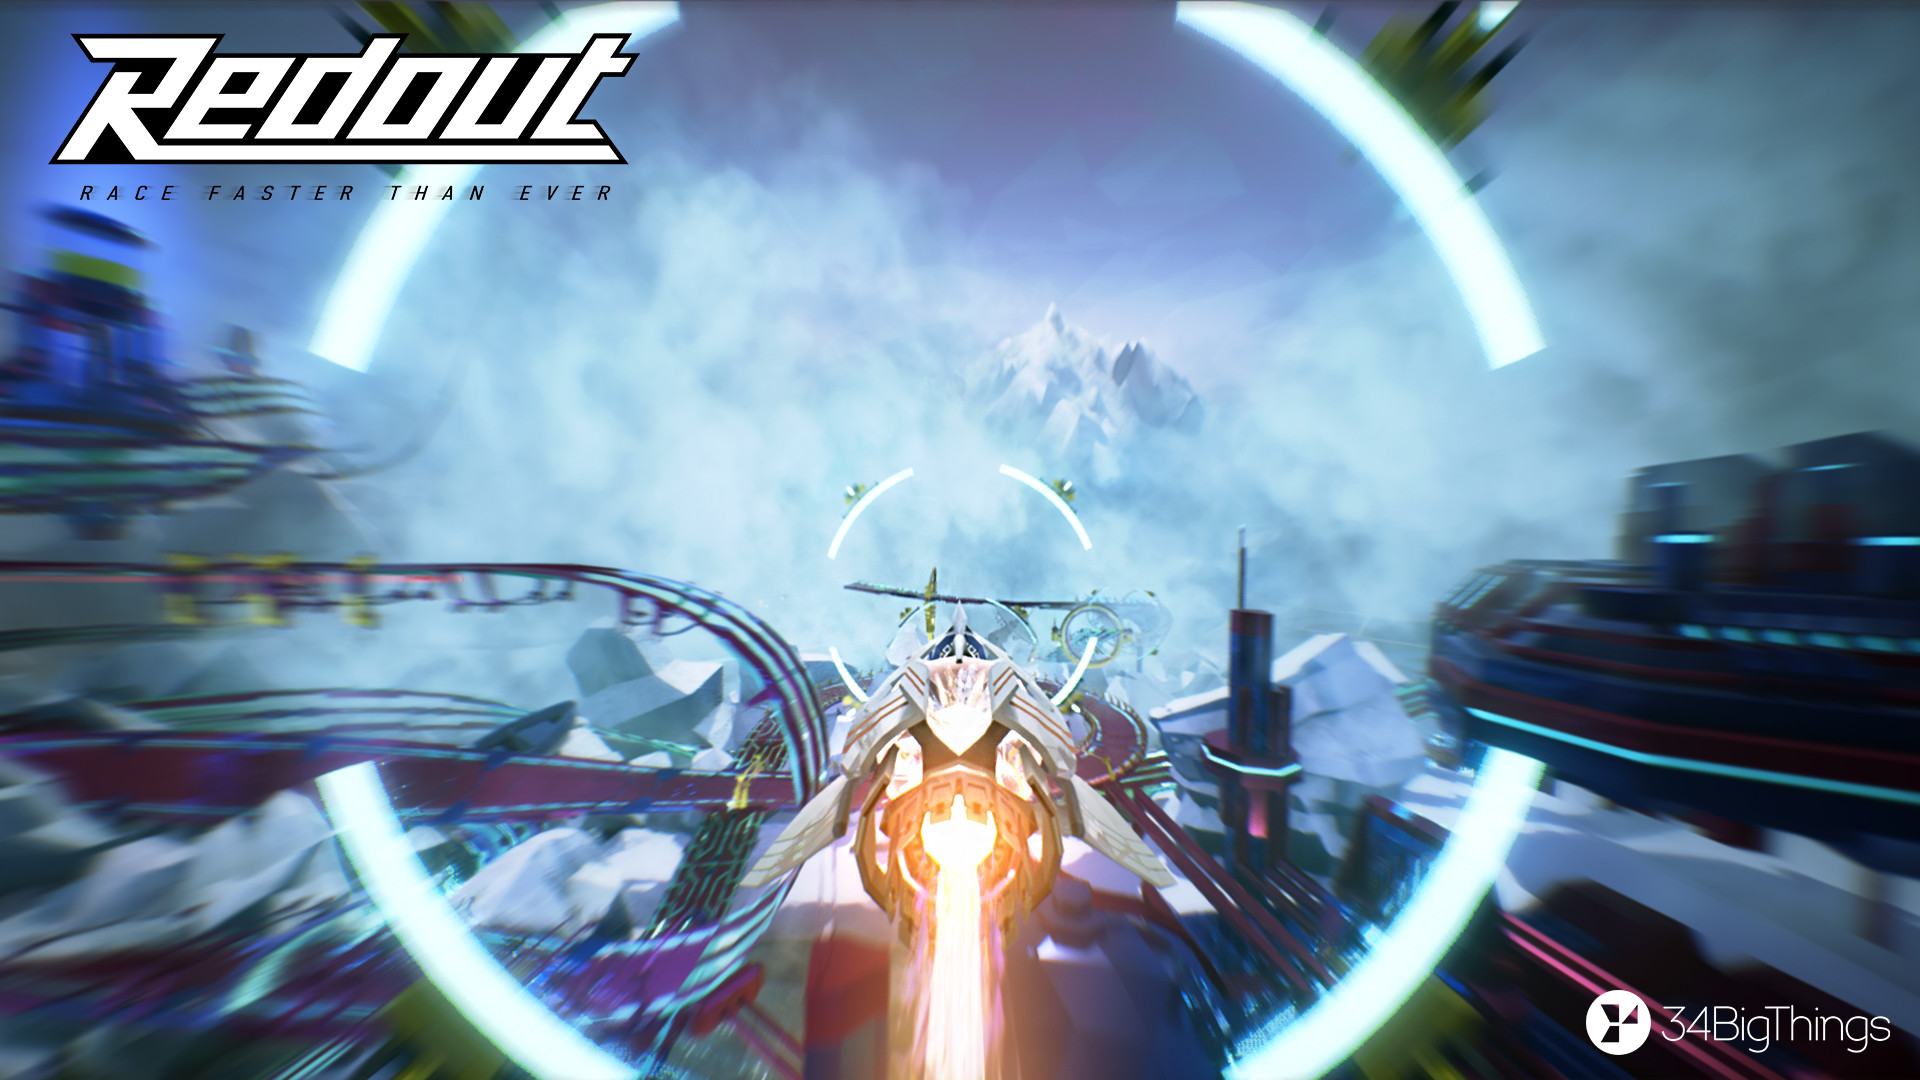 Redout Features